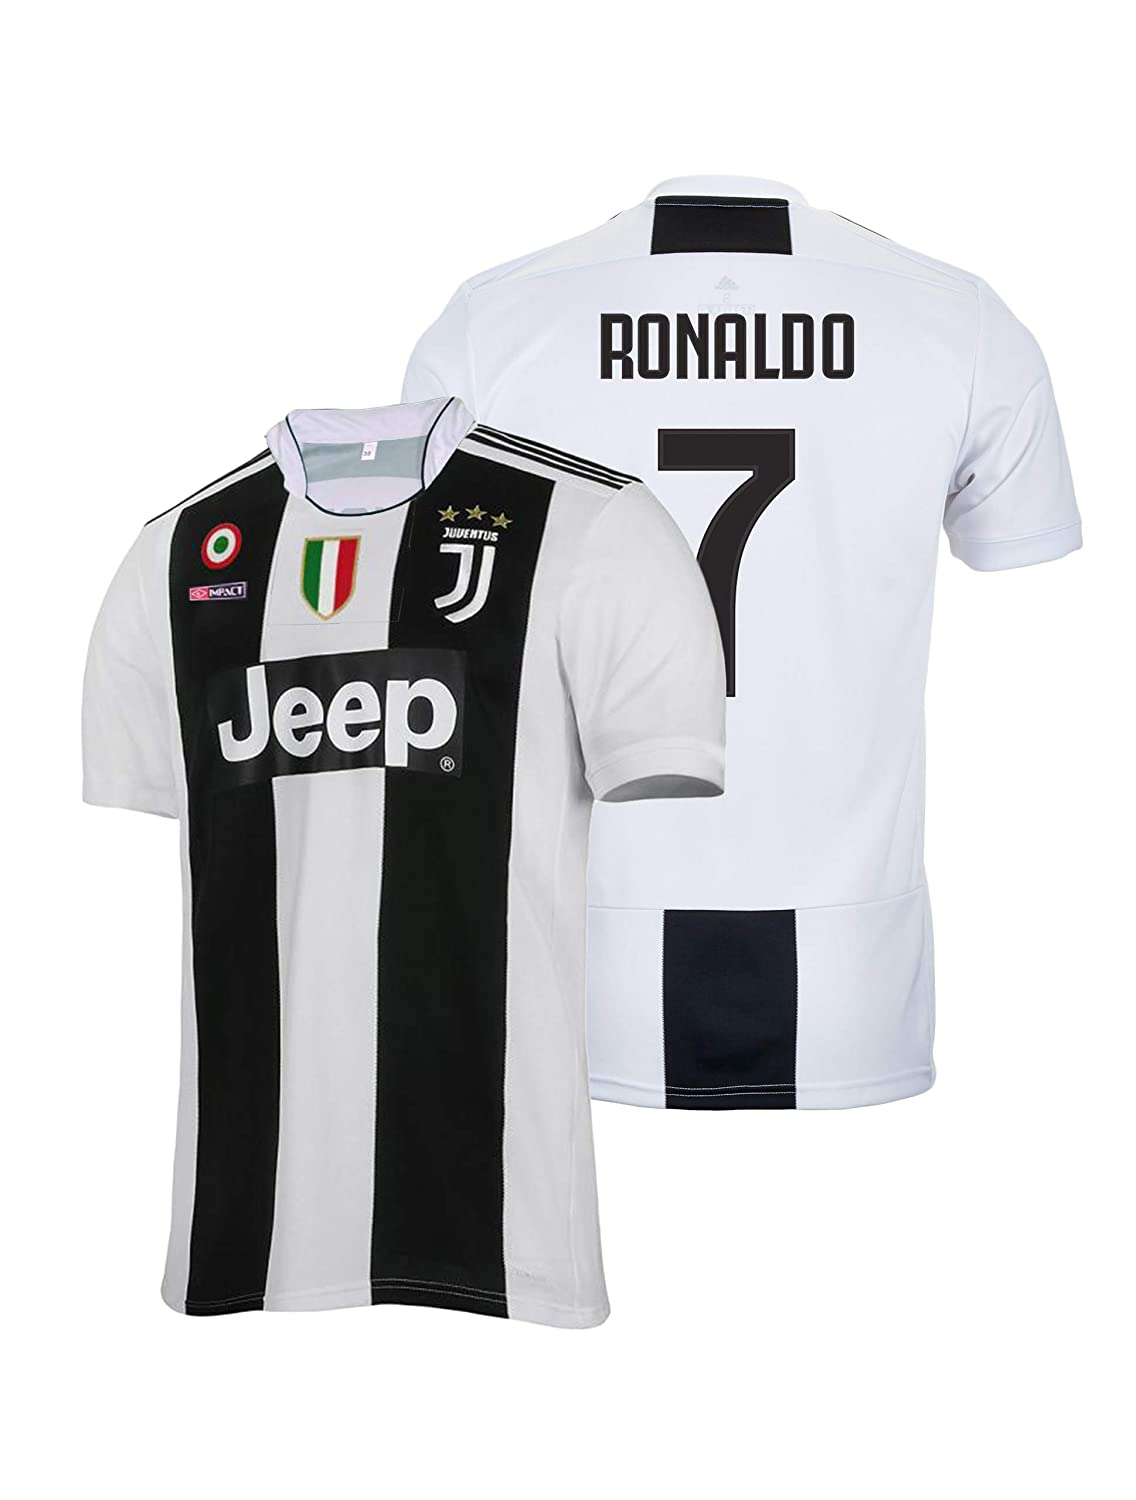 hot sale online 0aab3 bdd58 Cristiano Ronaldo Juventus Jersey (Non Branded)